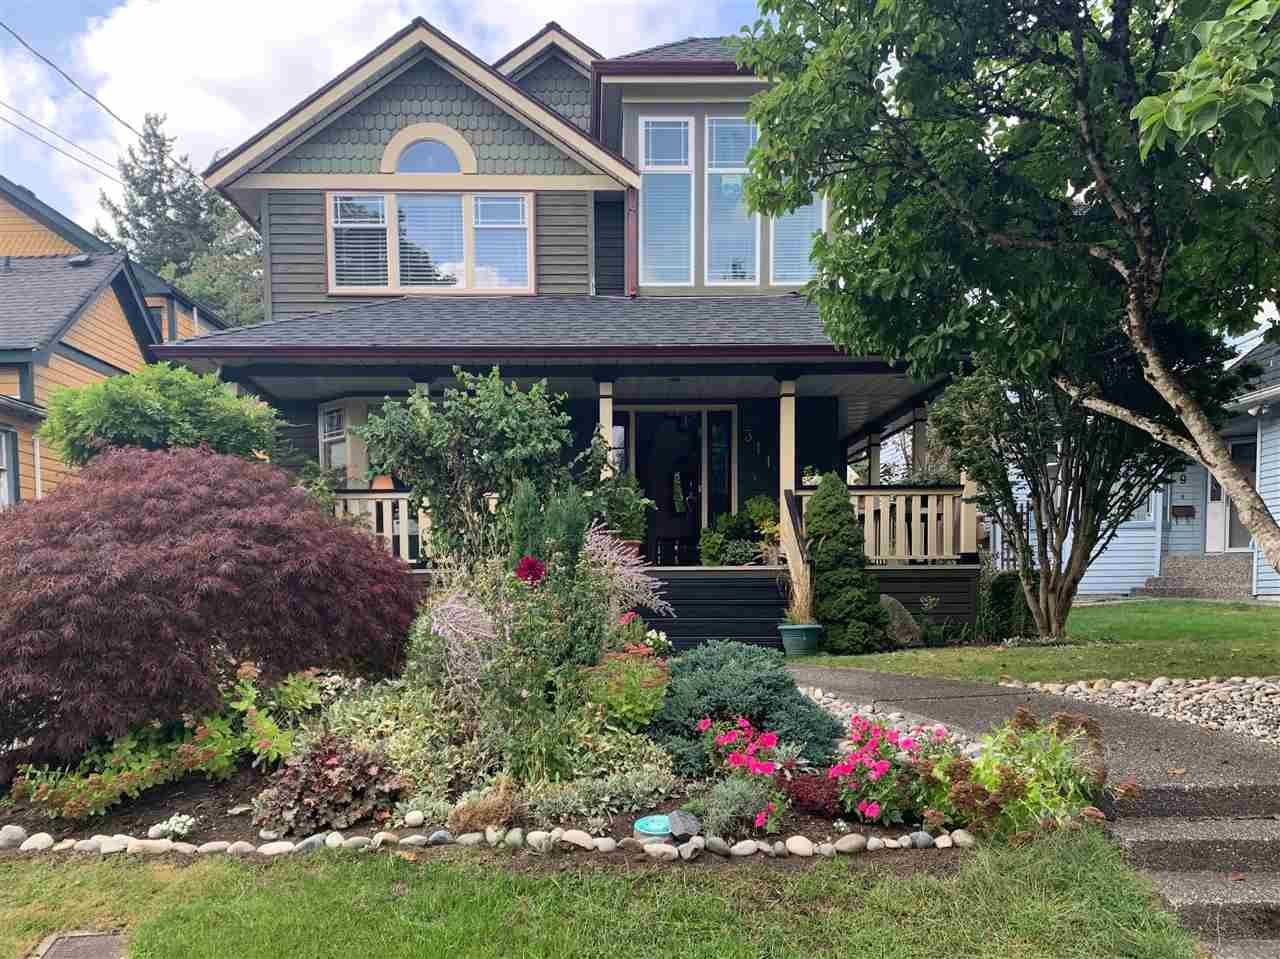 Main Photo: 311 LIVERPOOL Street in New Westminster: Queens Park House for sale : MLS®# R2504780